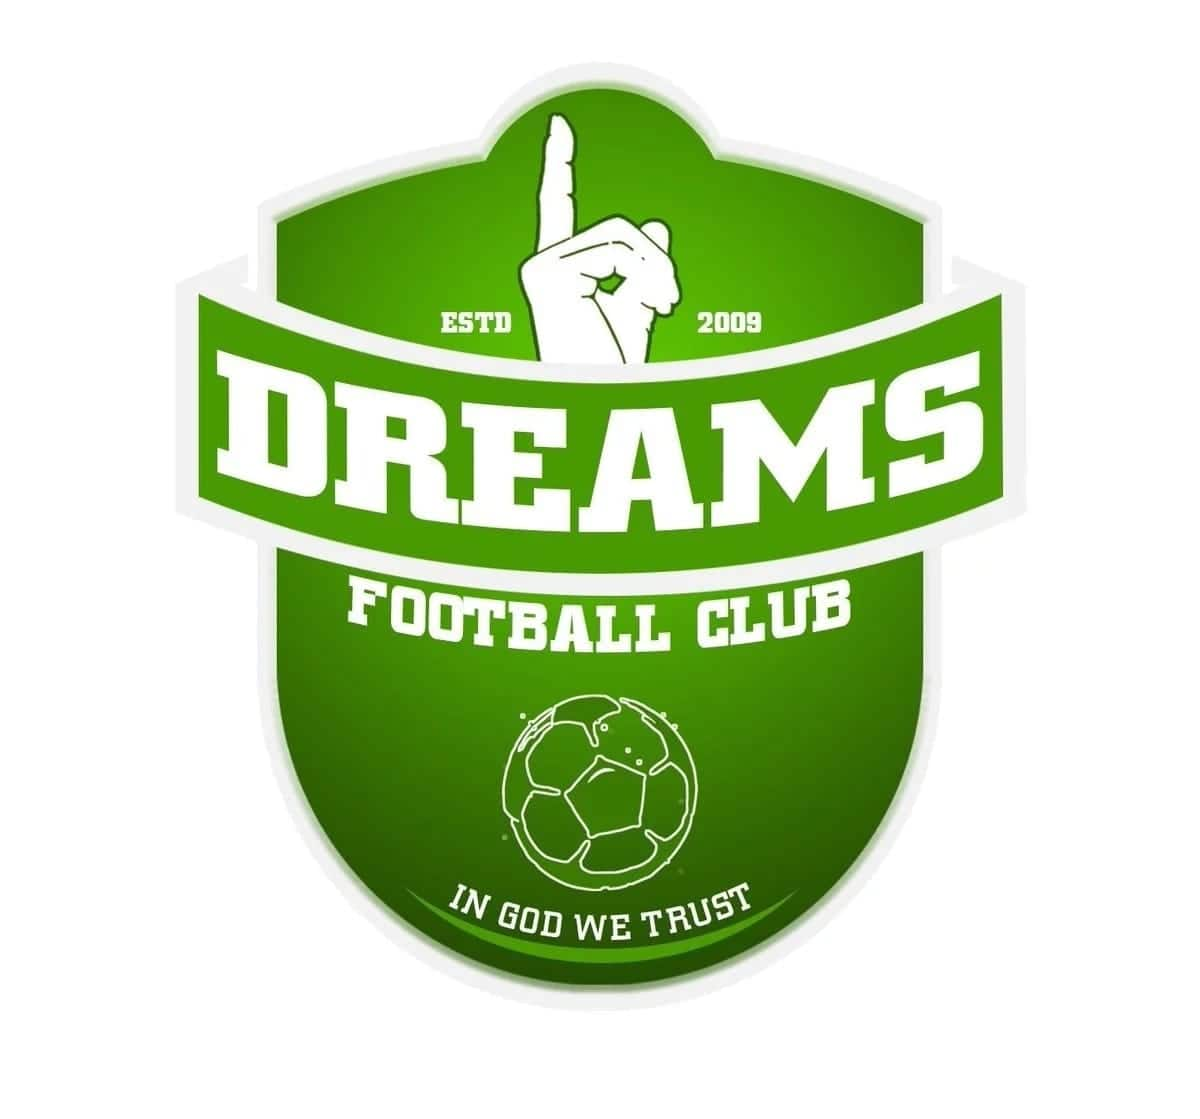 All soccer academies in Ghana Dreams fc richest footballer in Ghana football academy in Ghana